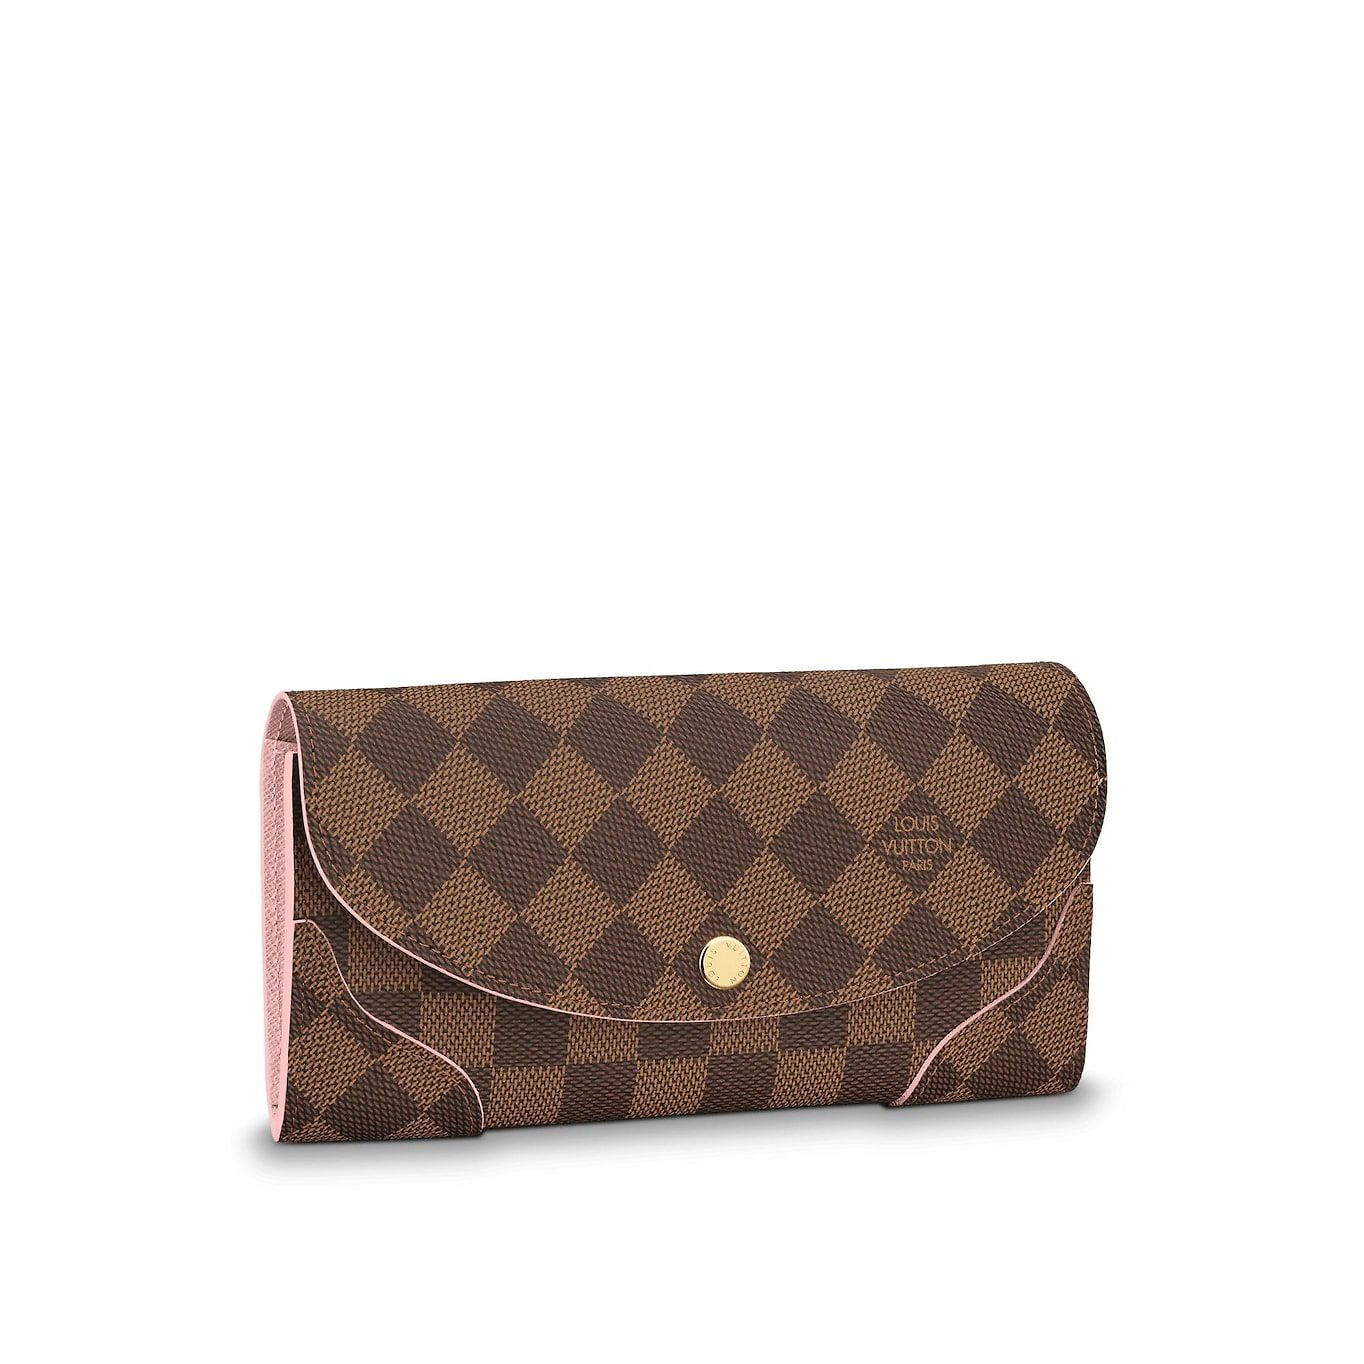 7be10e4b7161 View 1 - Damier Ebene SMALL LEATHER GOODS WALLETS Caïssa Wallet ...